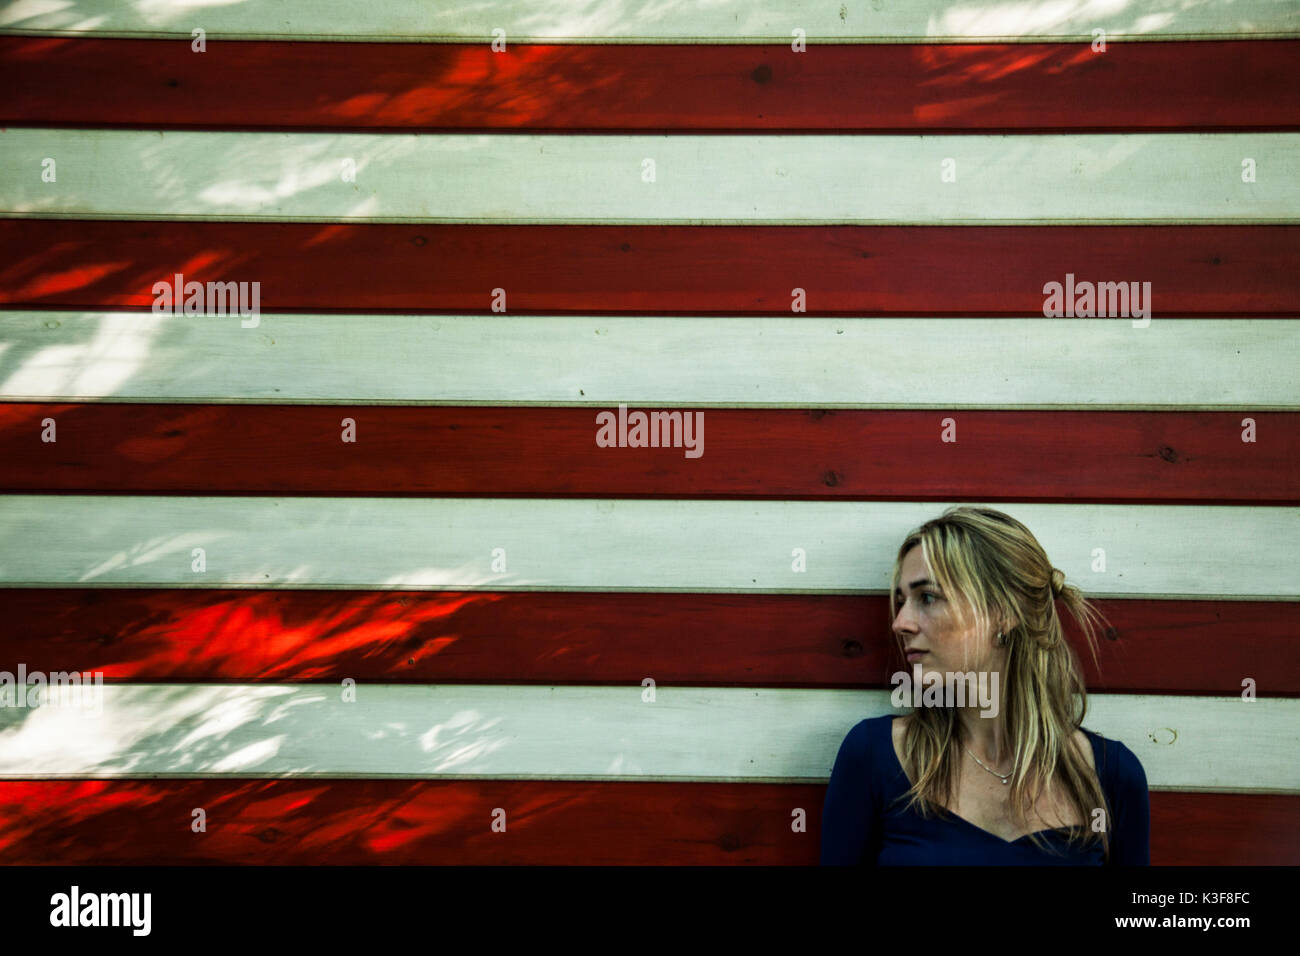 Profile Portrait of Sad Mid-Adult Woman Against Striped Wall - Stock Image